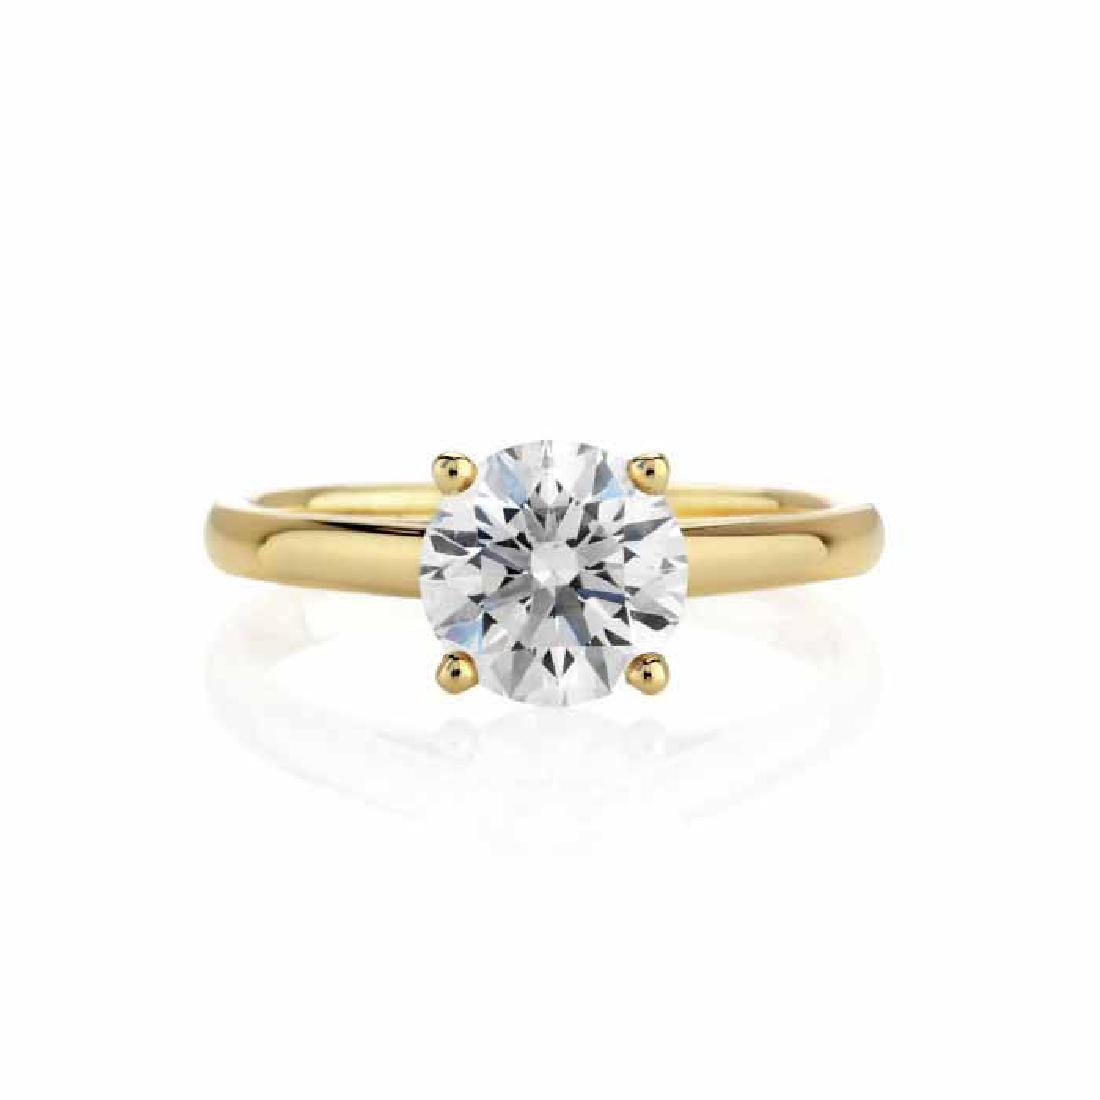 CERTIFIED 0.7 CTW D/VS1 ROUND DIAMOND SOLITAIRE RING IN